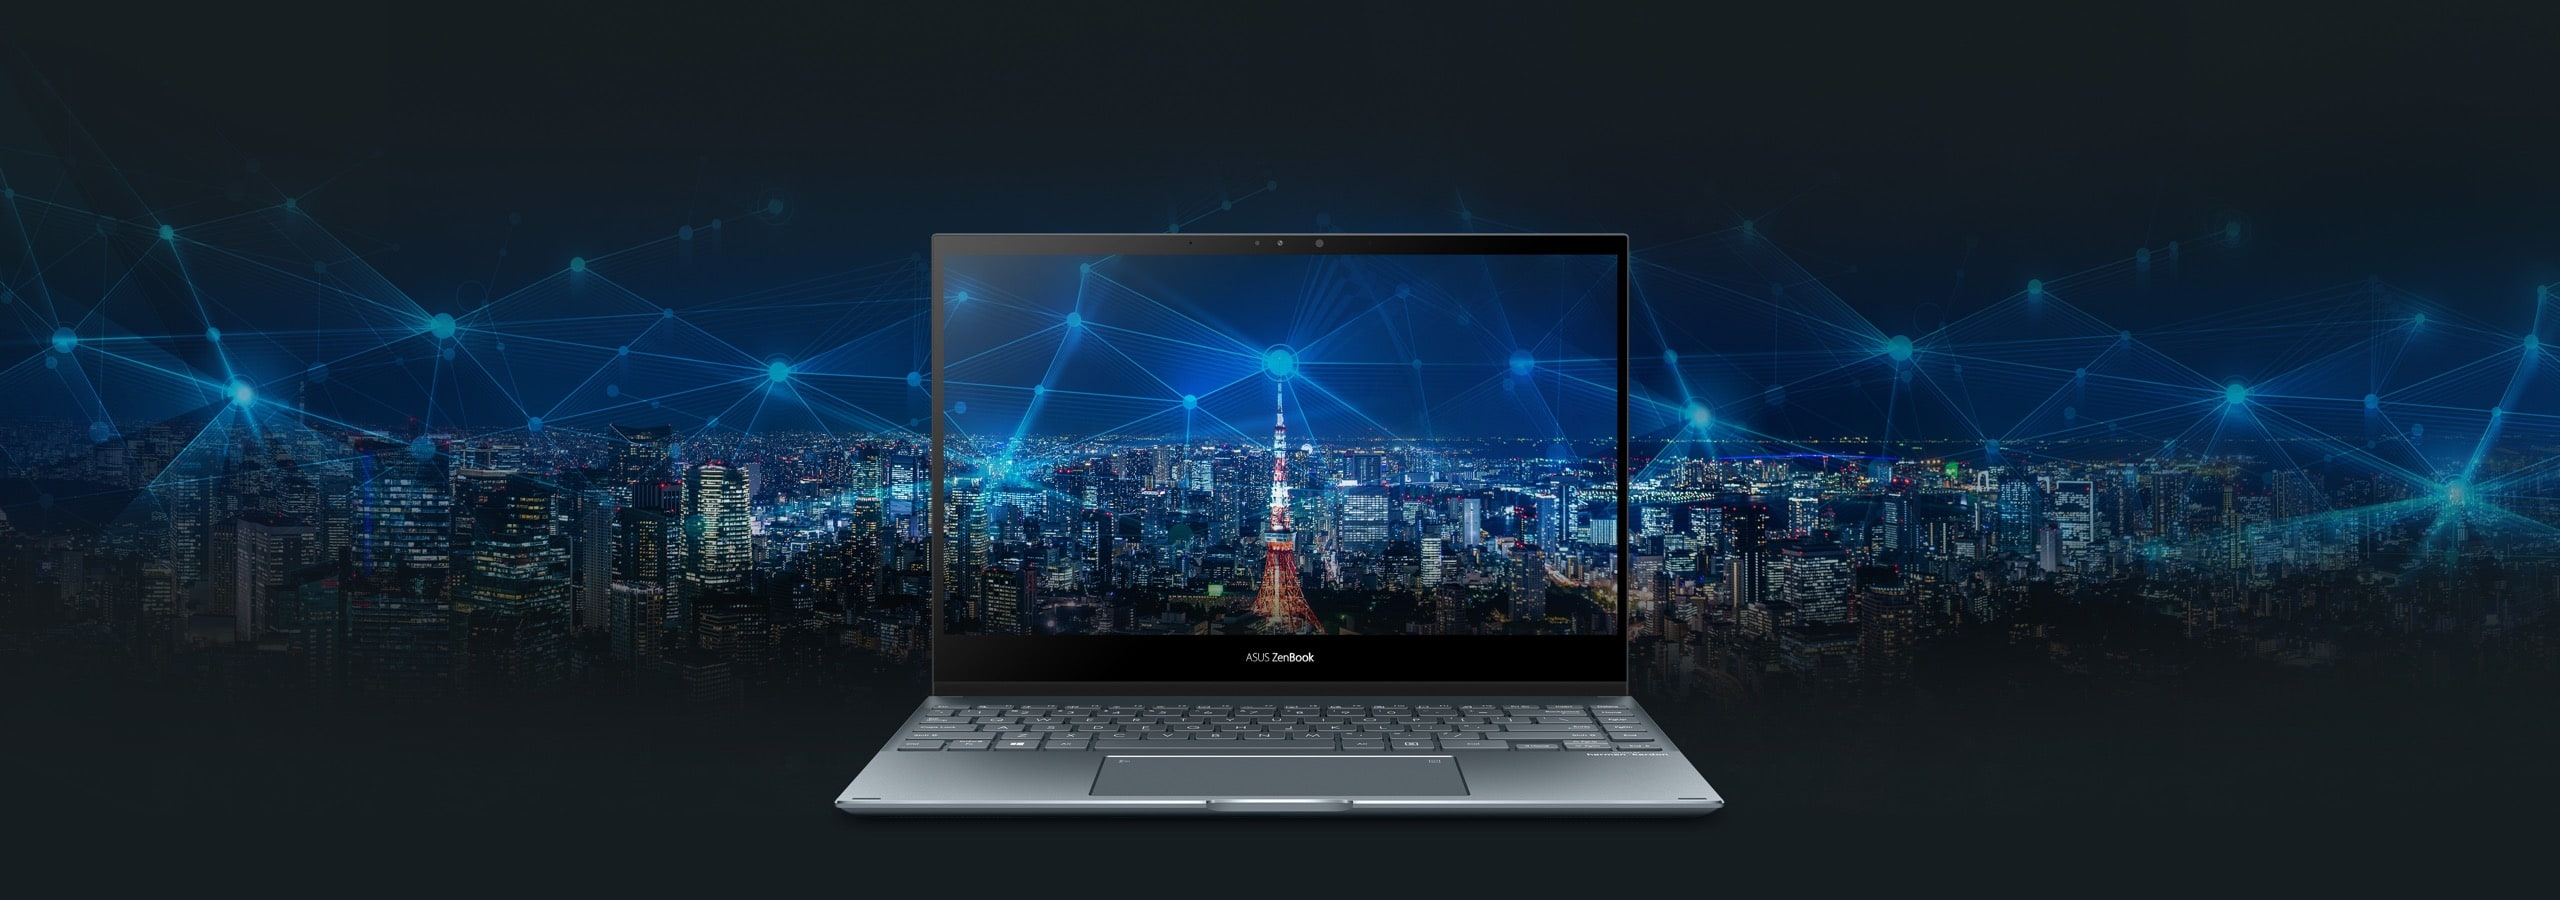 https://dlcdnimgs.asus.com/websites/global/products/u7hp3yzcbcpmz641/v1/features/images/large/1x/s8.jpg